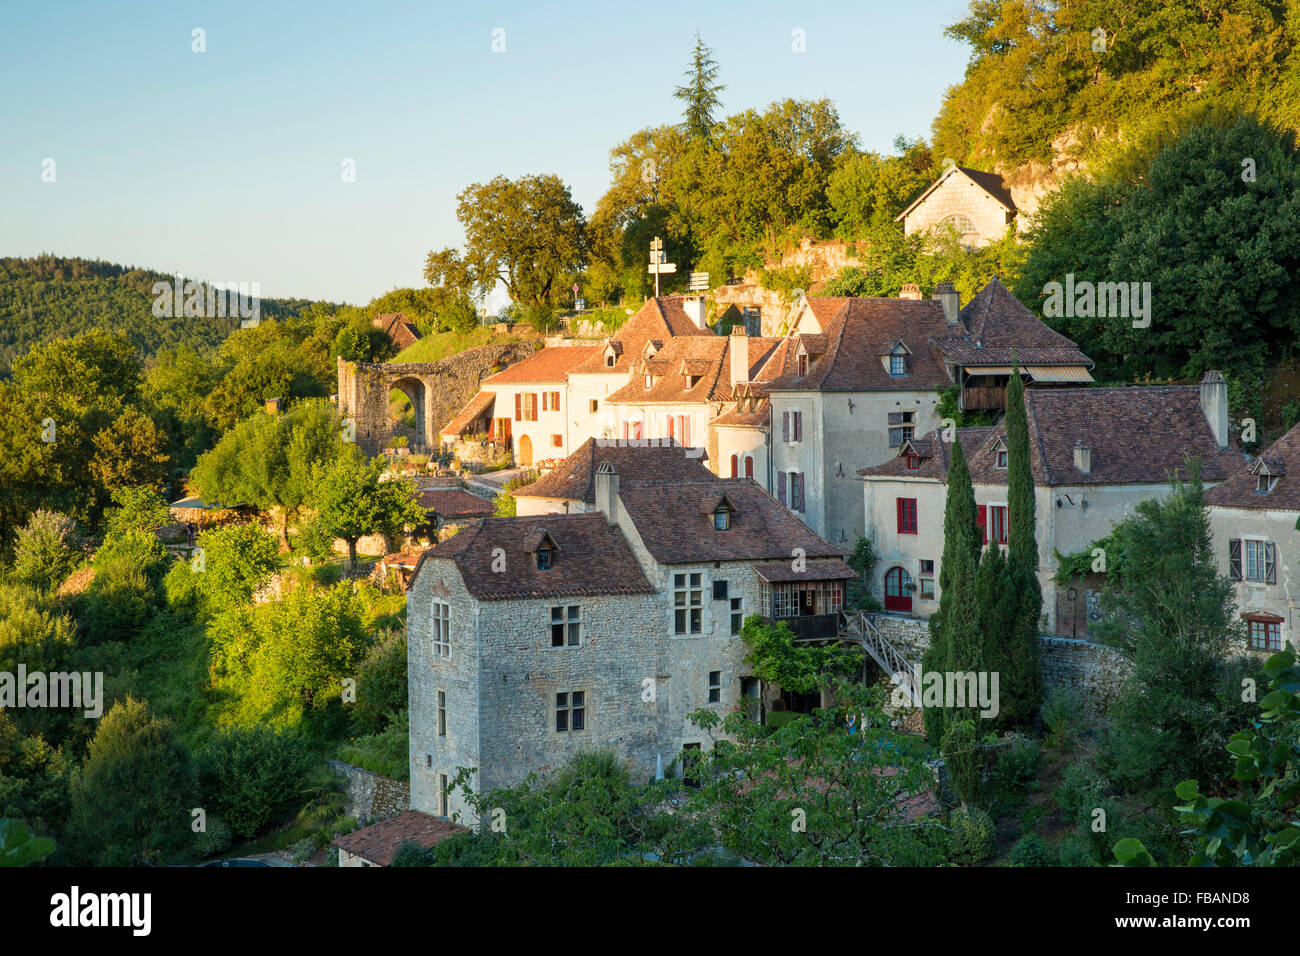 Evening sunlight over medieval town of Saint-Cirq-Lapopie, Midi-Pyrenees, France - Stock Image